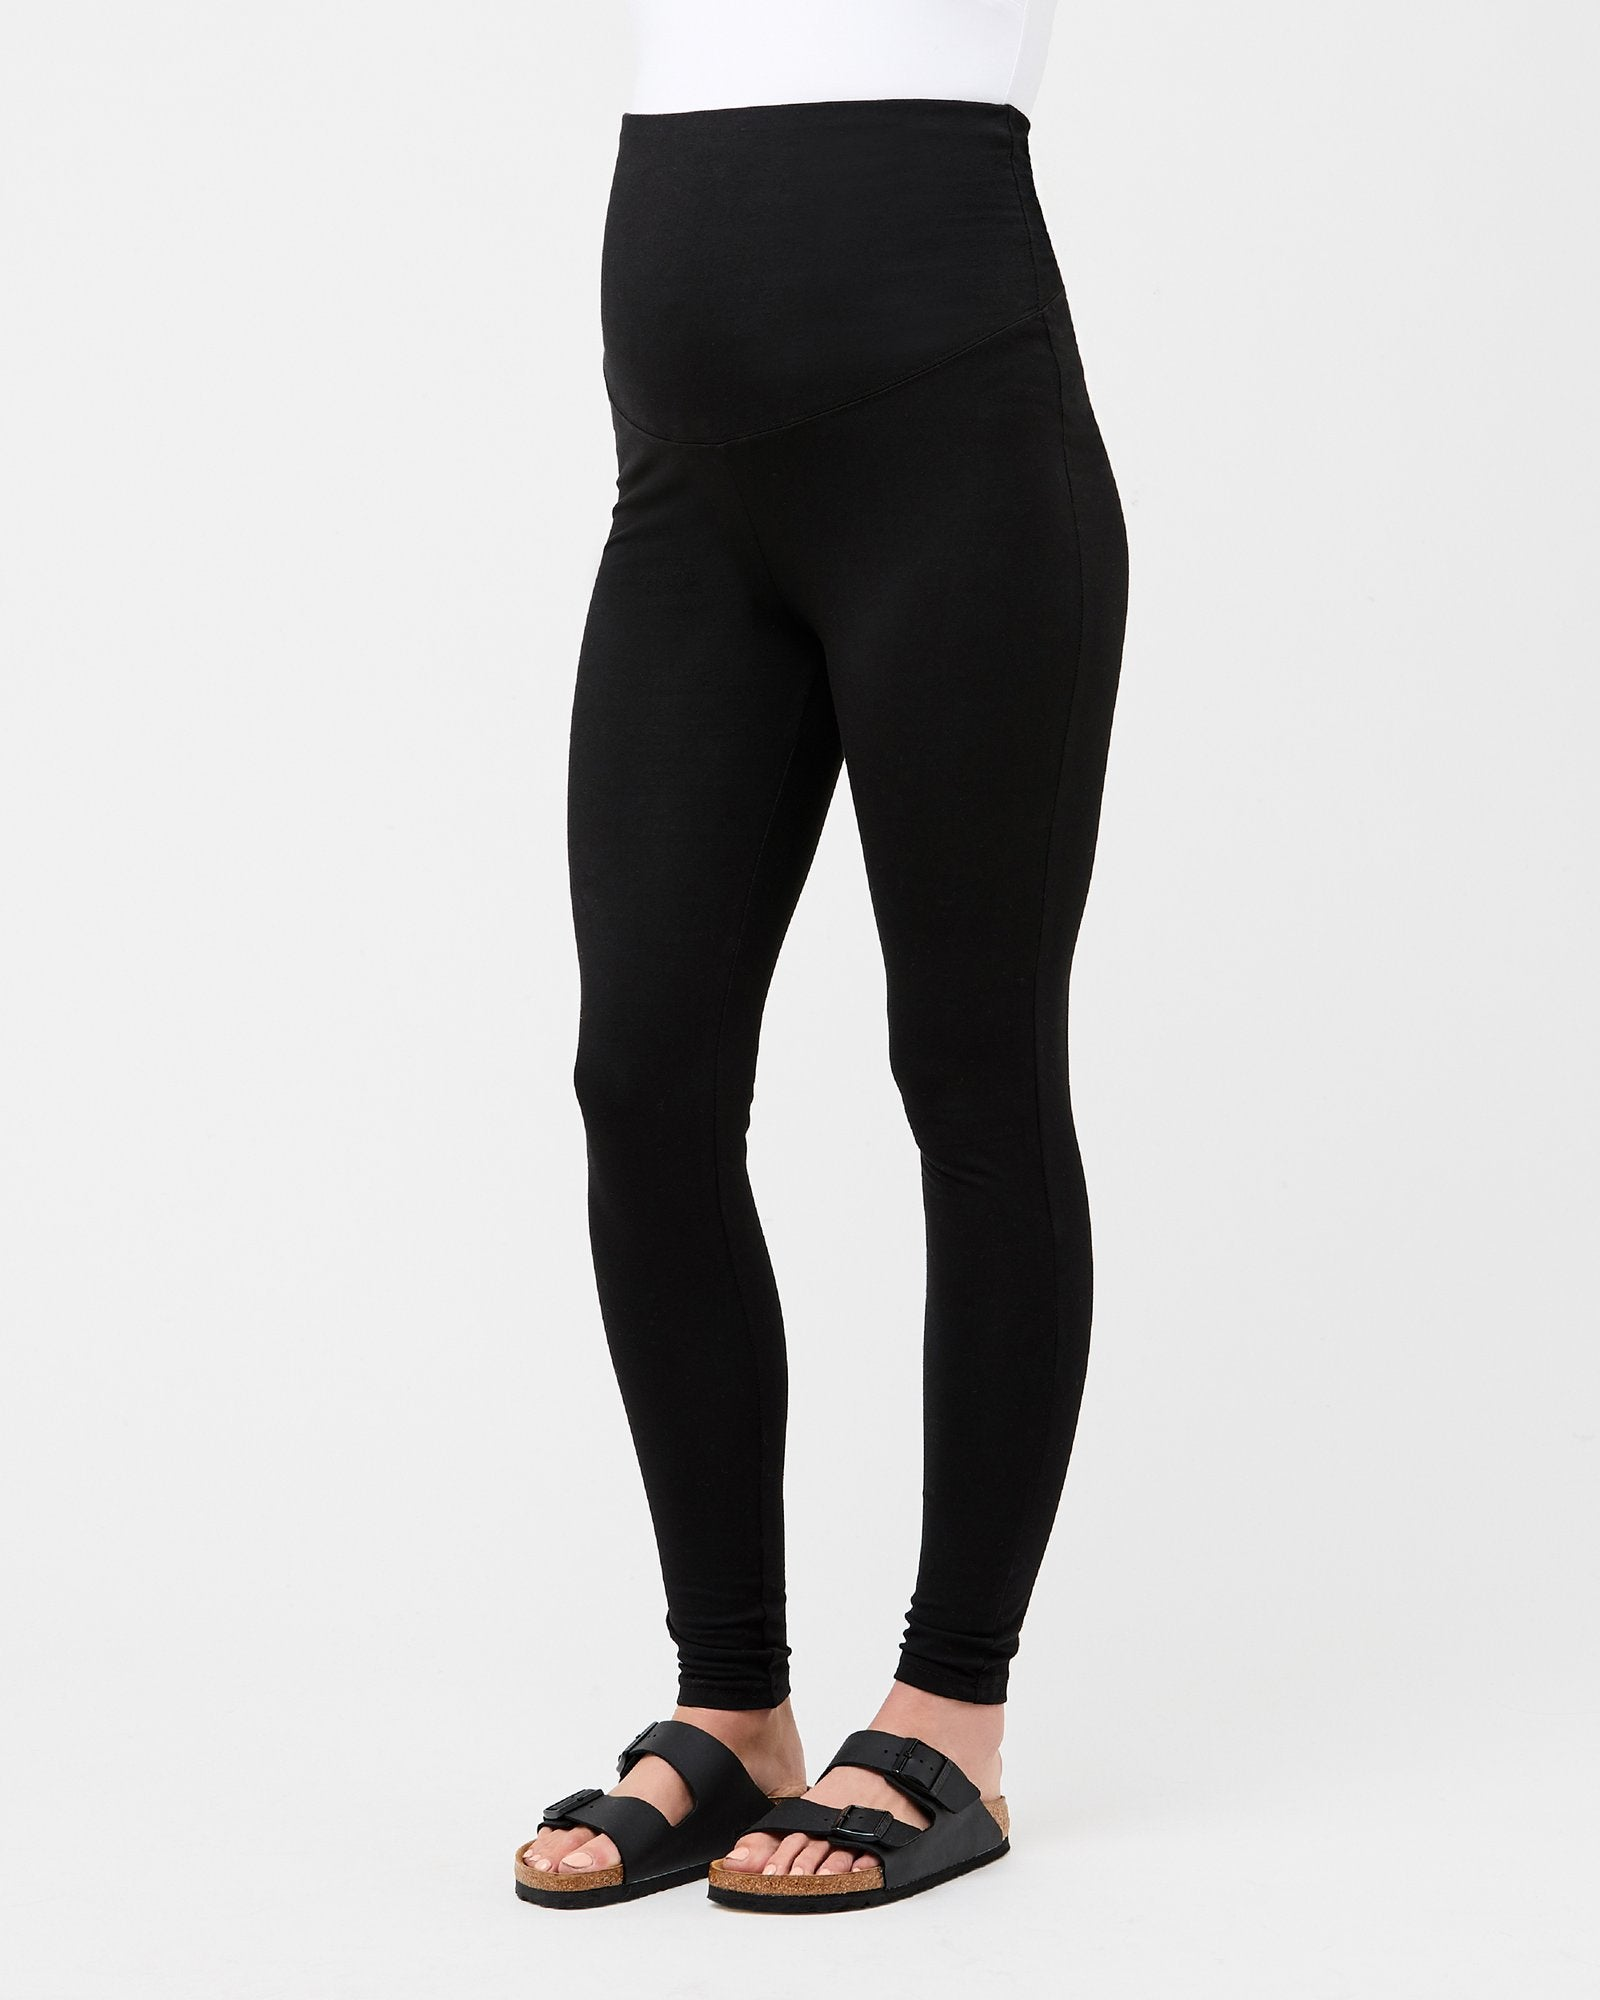 Over Tummy Maternity Black Legging